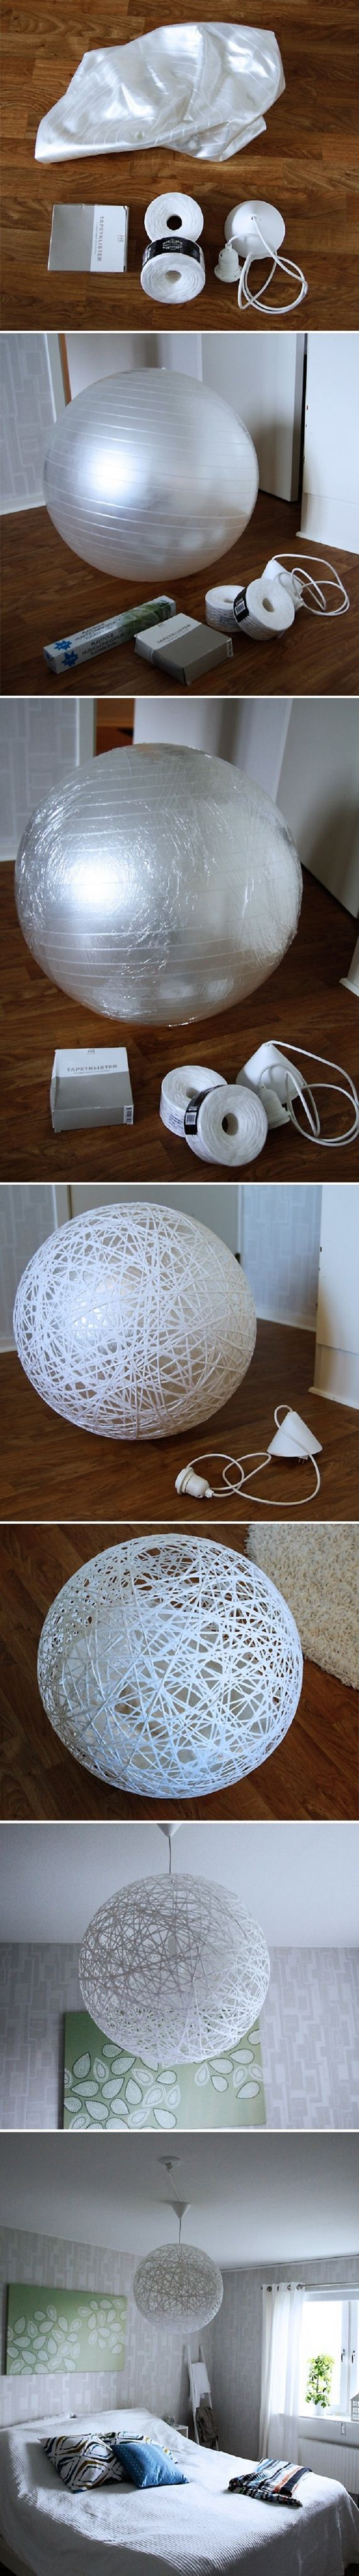 04-instant-and-fun-easy-diy-craft-projects-to-do-at-home